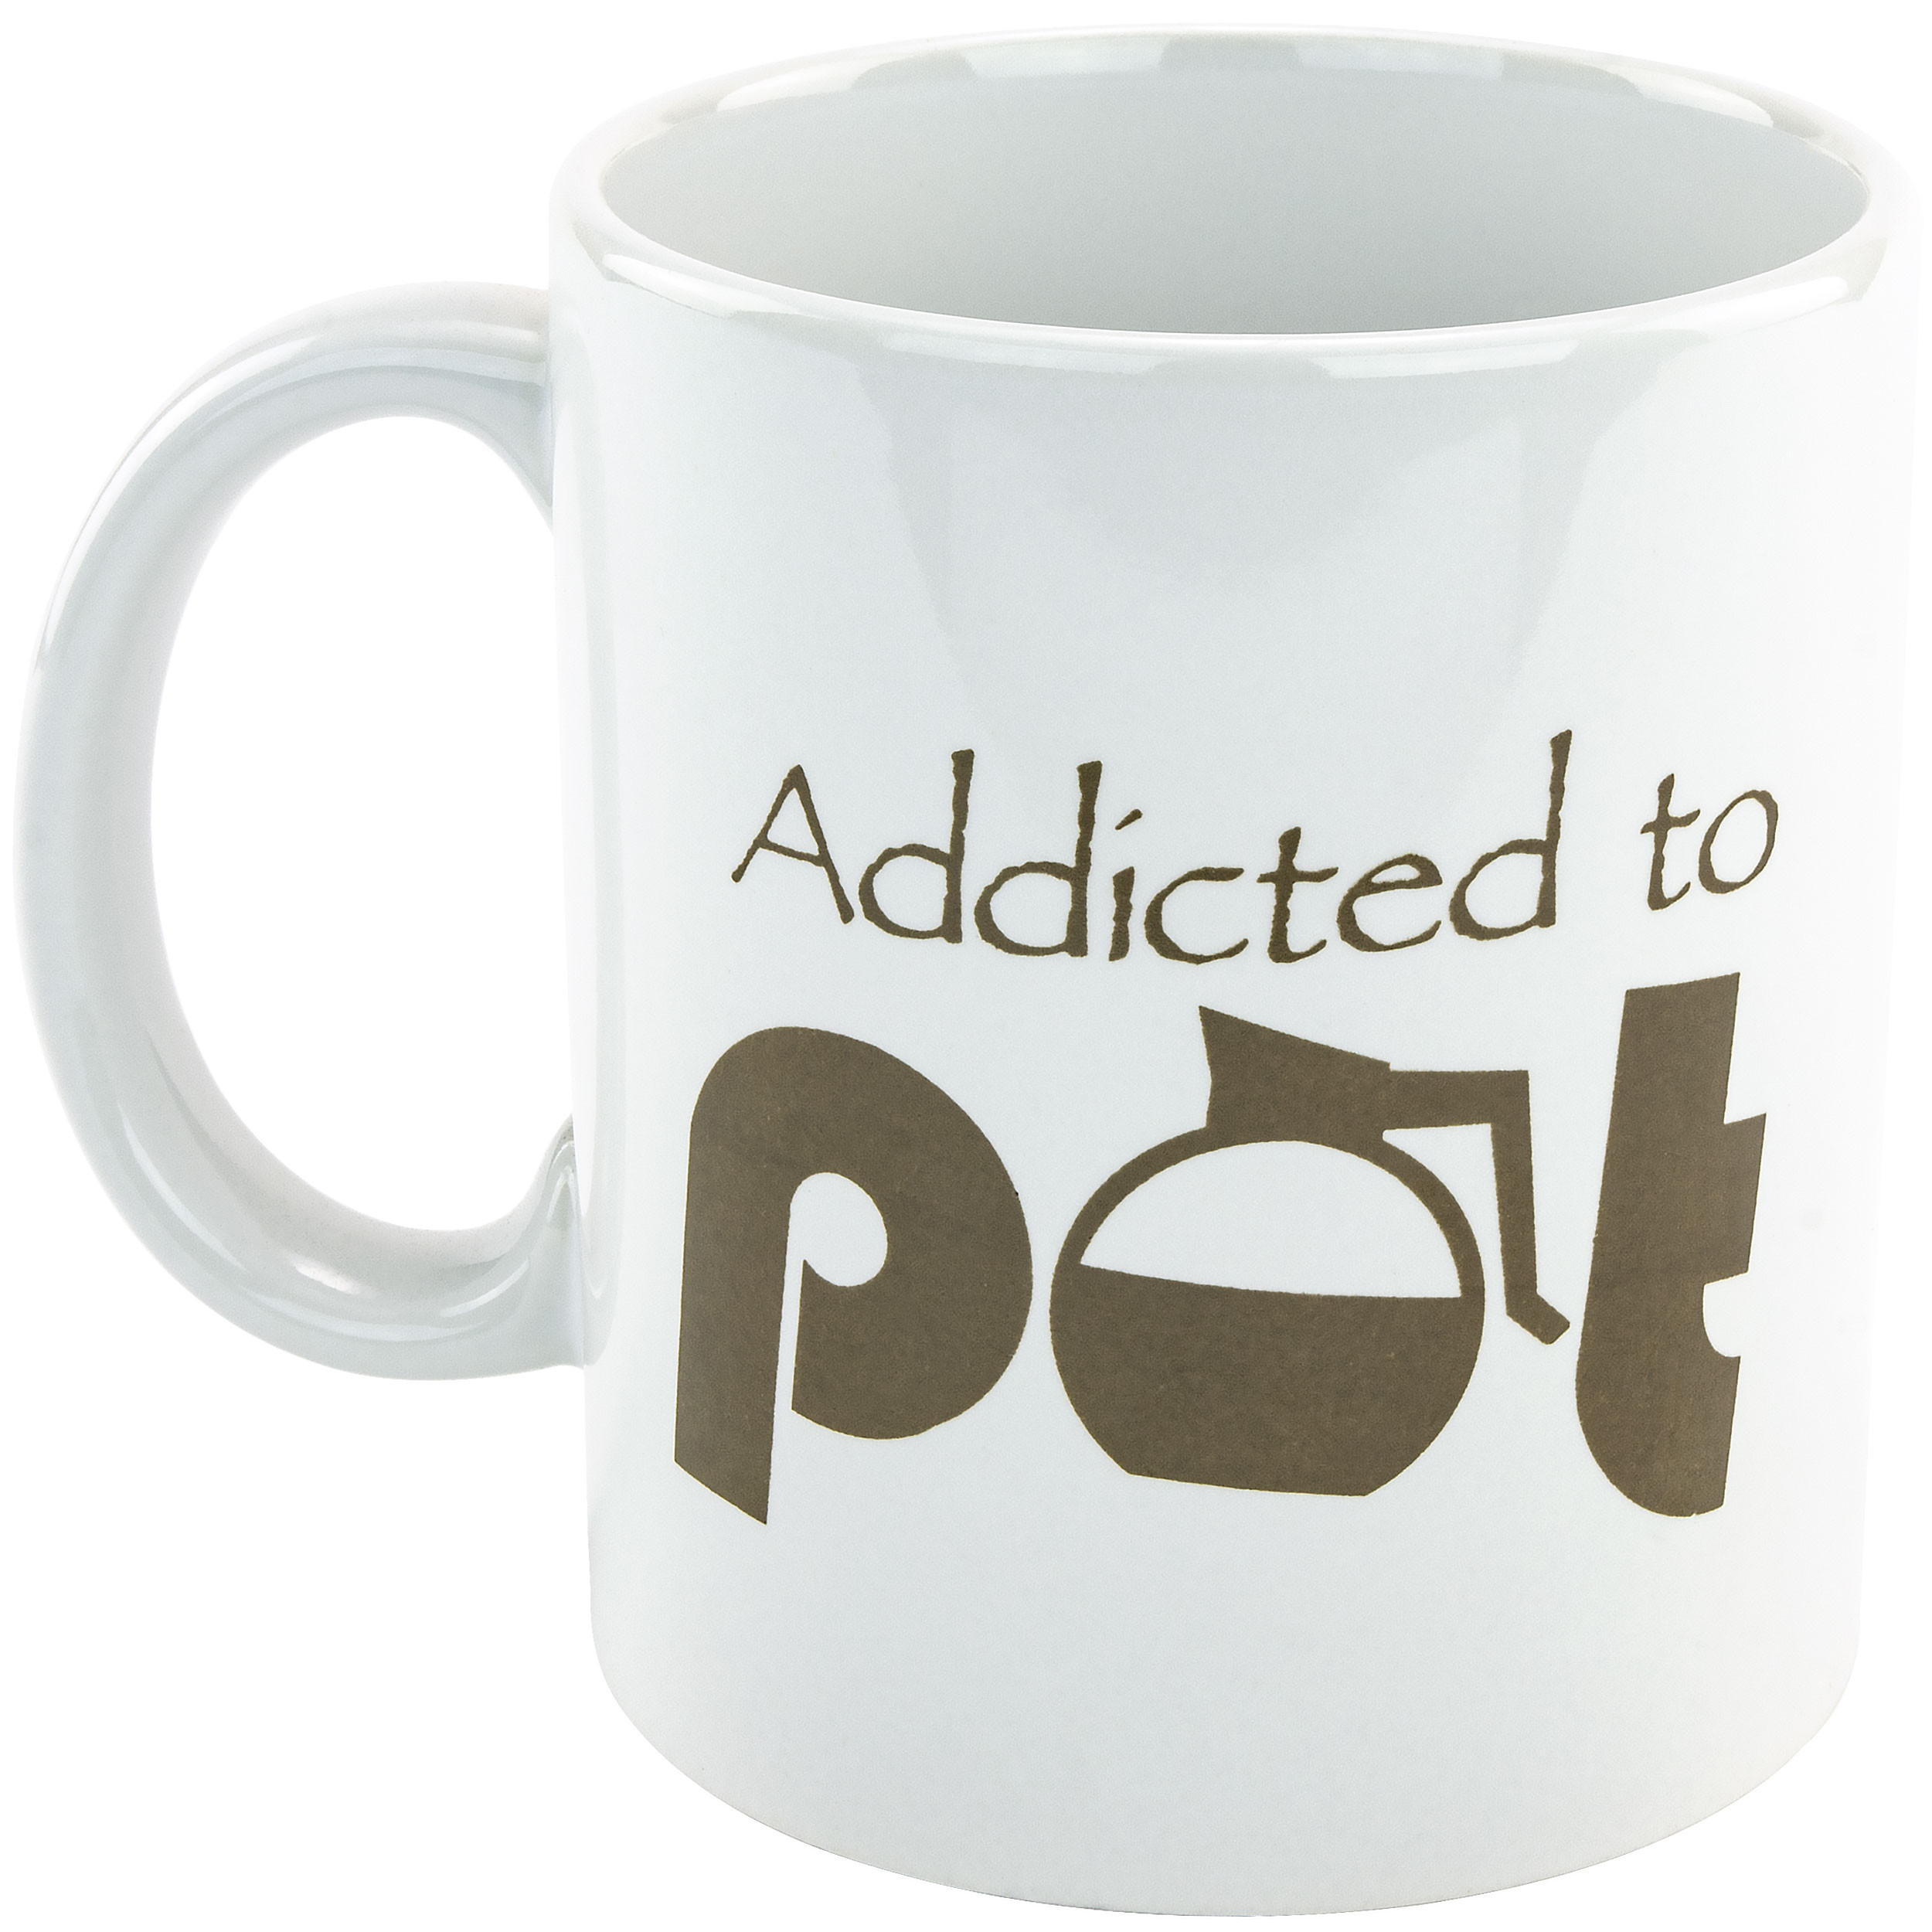 Fairly Odd Novelties FON-20022-001-001 Addicted To Pot-11oz Mug, One Size, White